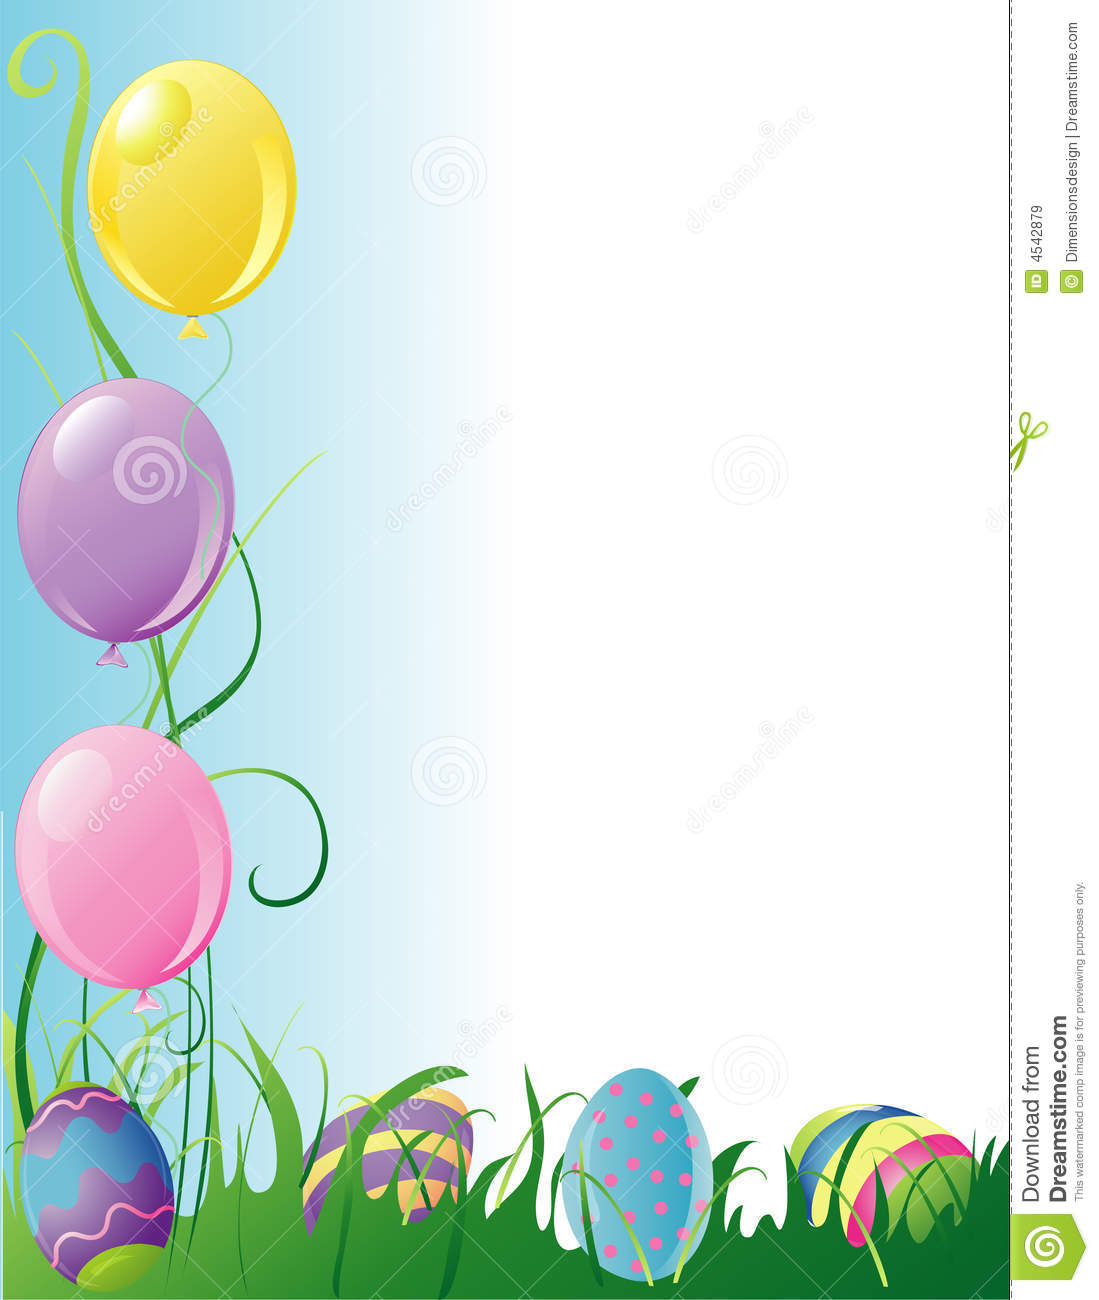 Easter Party Border Royalty Free Stock Images - Image: 4542879